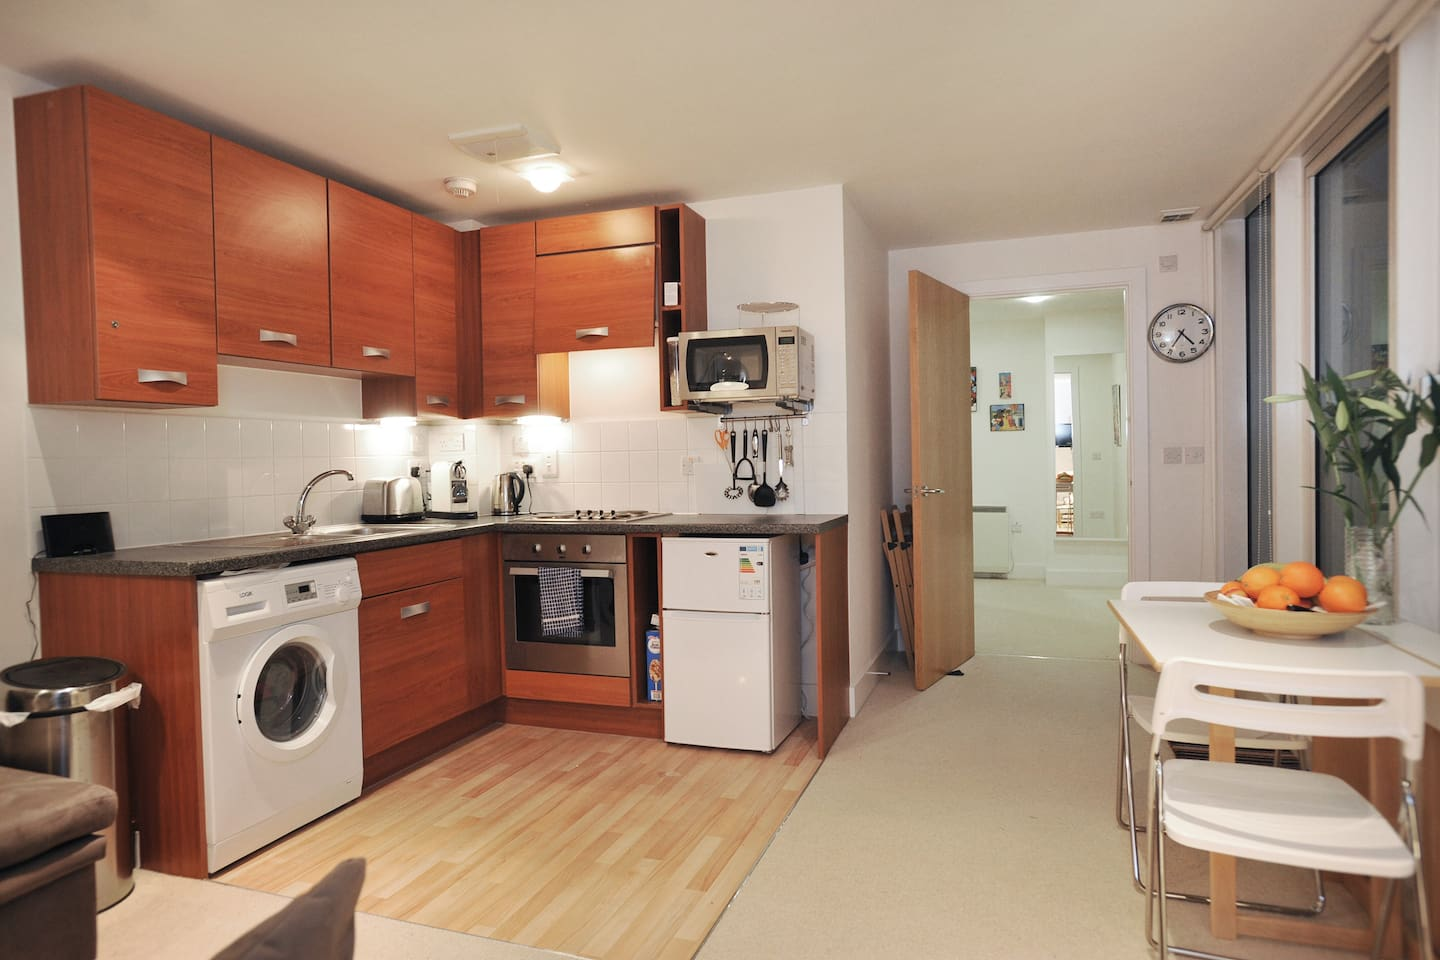 London Bridge One Bedroom Flat Apartments For Rent In London